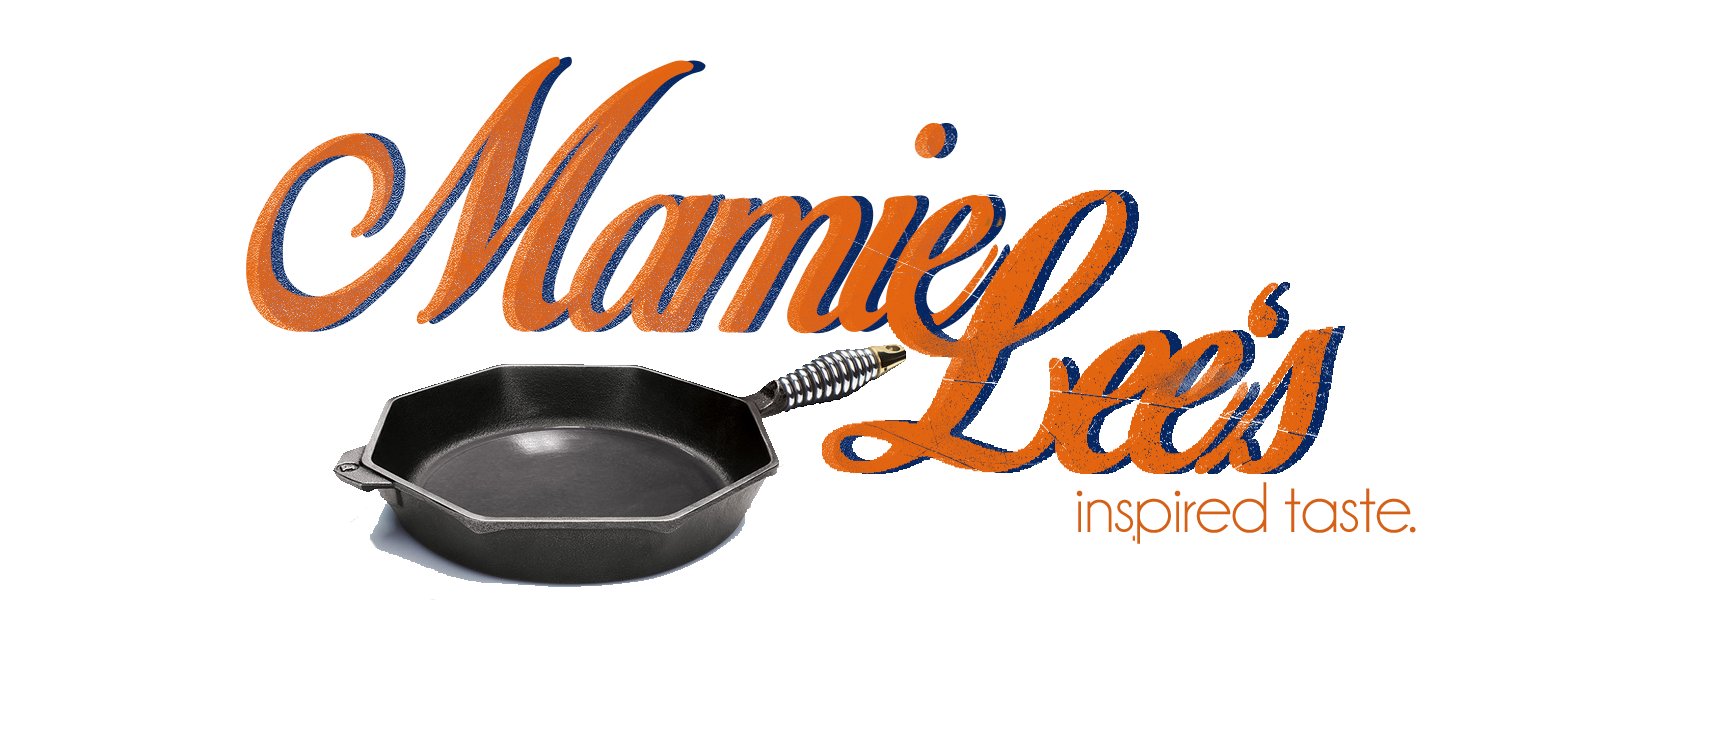 Mamie Lee's: Inspired Taste Logo